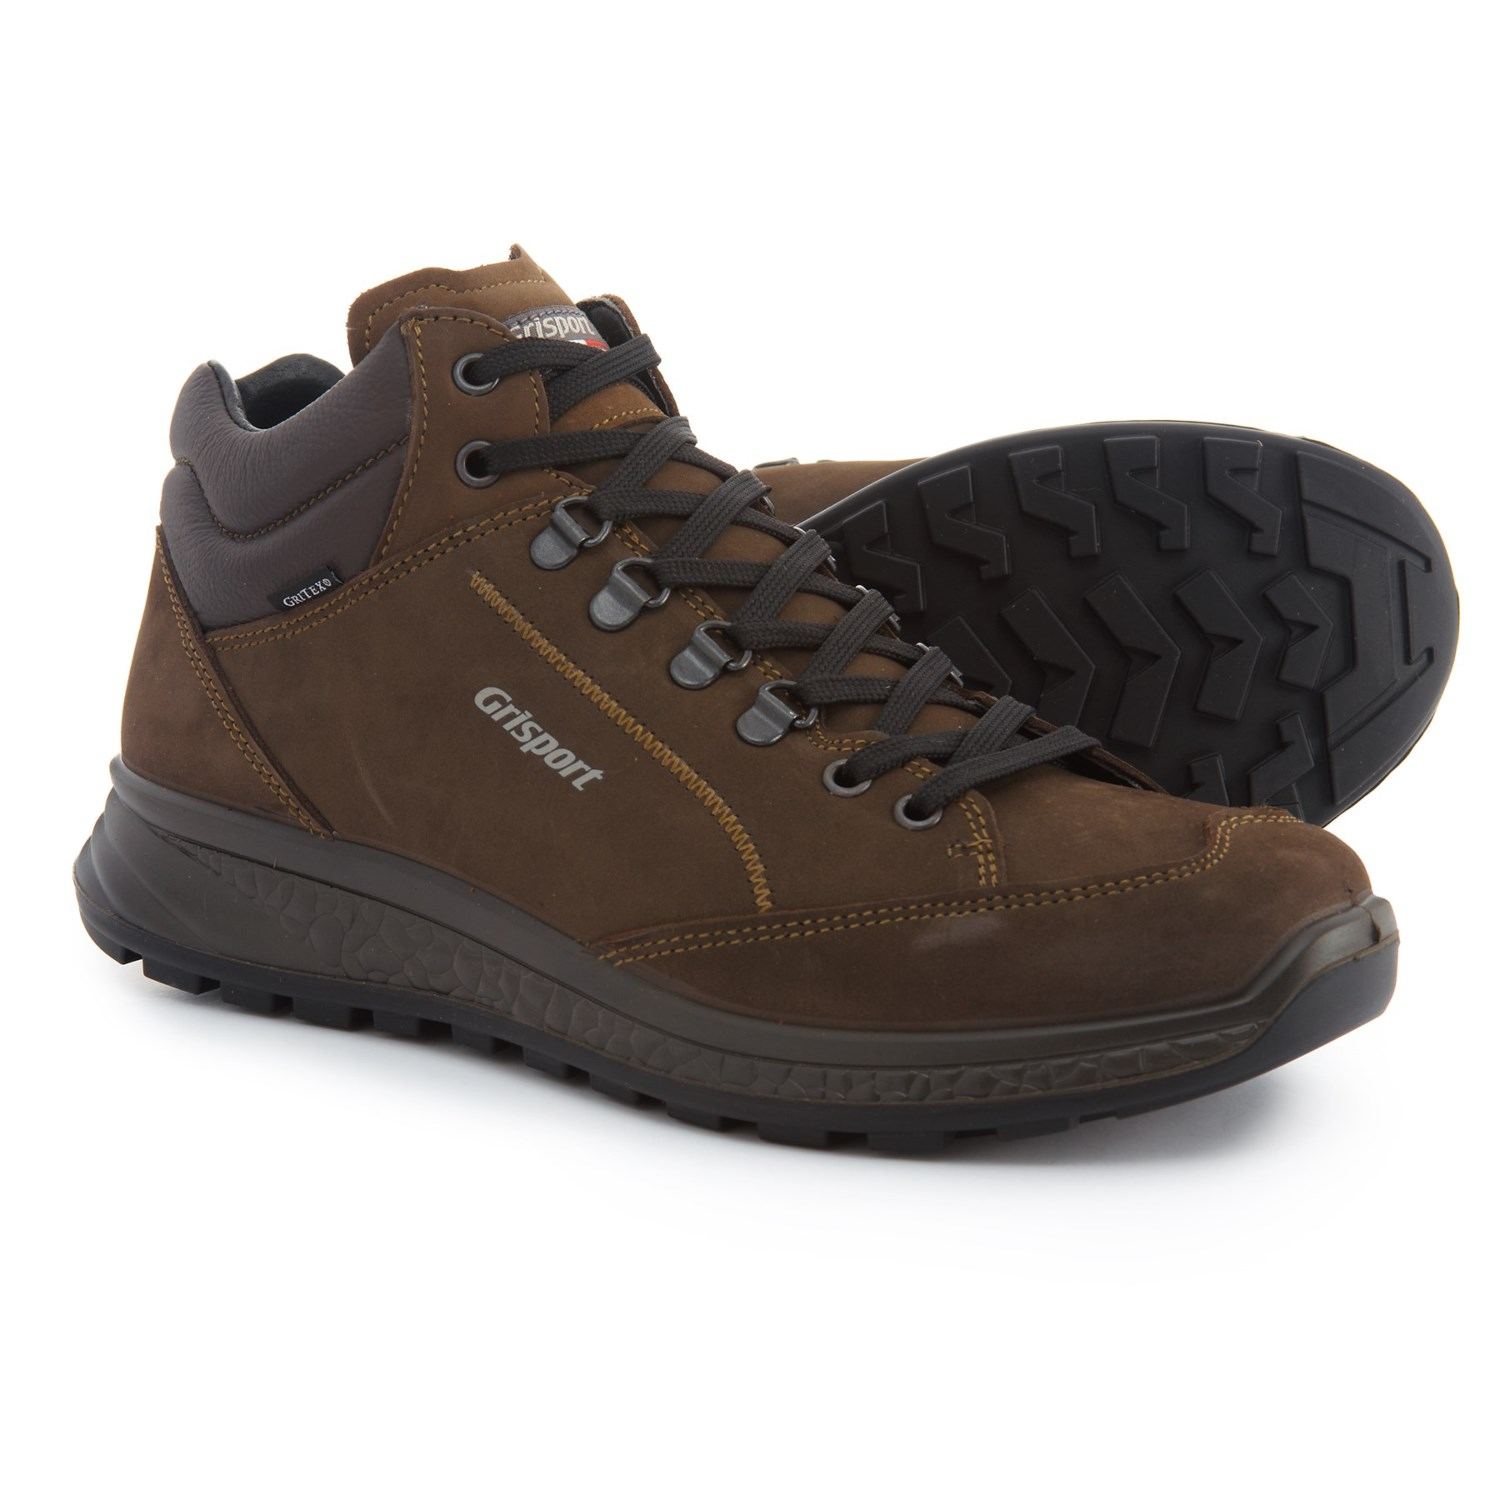 7bfbb248b90 Grisport Made in Italy Dolomite Hiking Boots - Leather (For Men ...